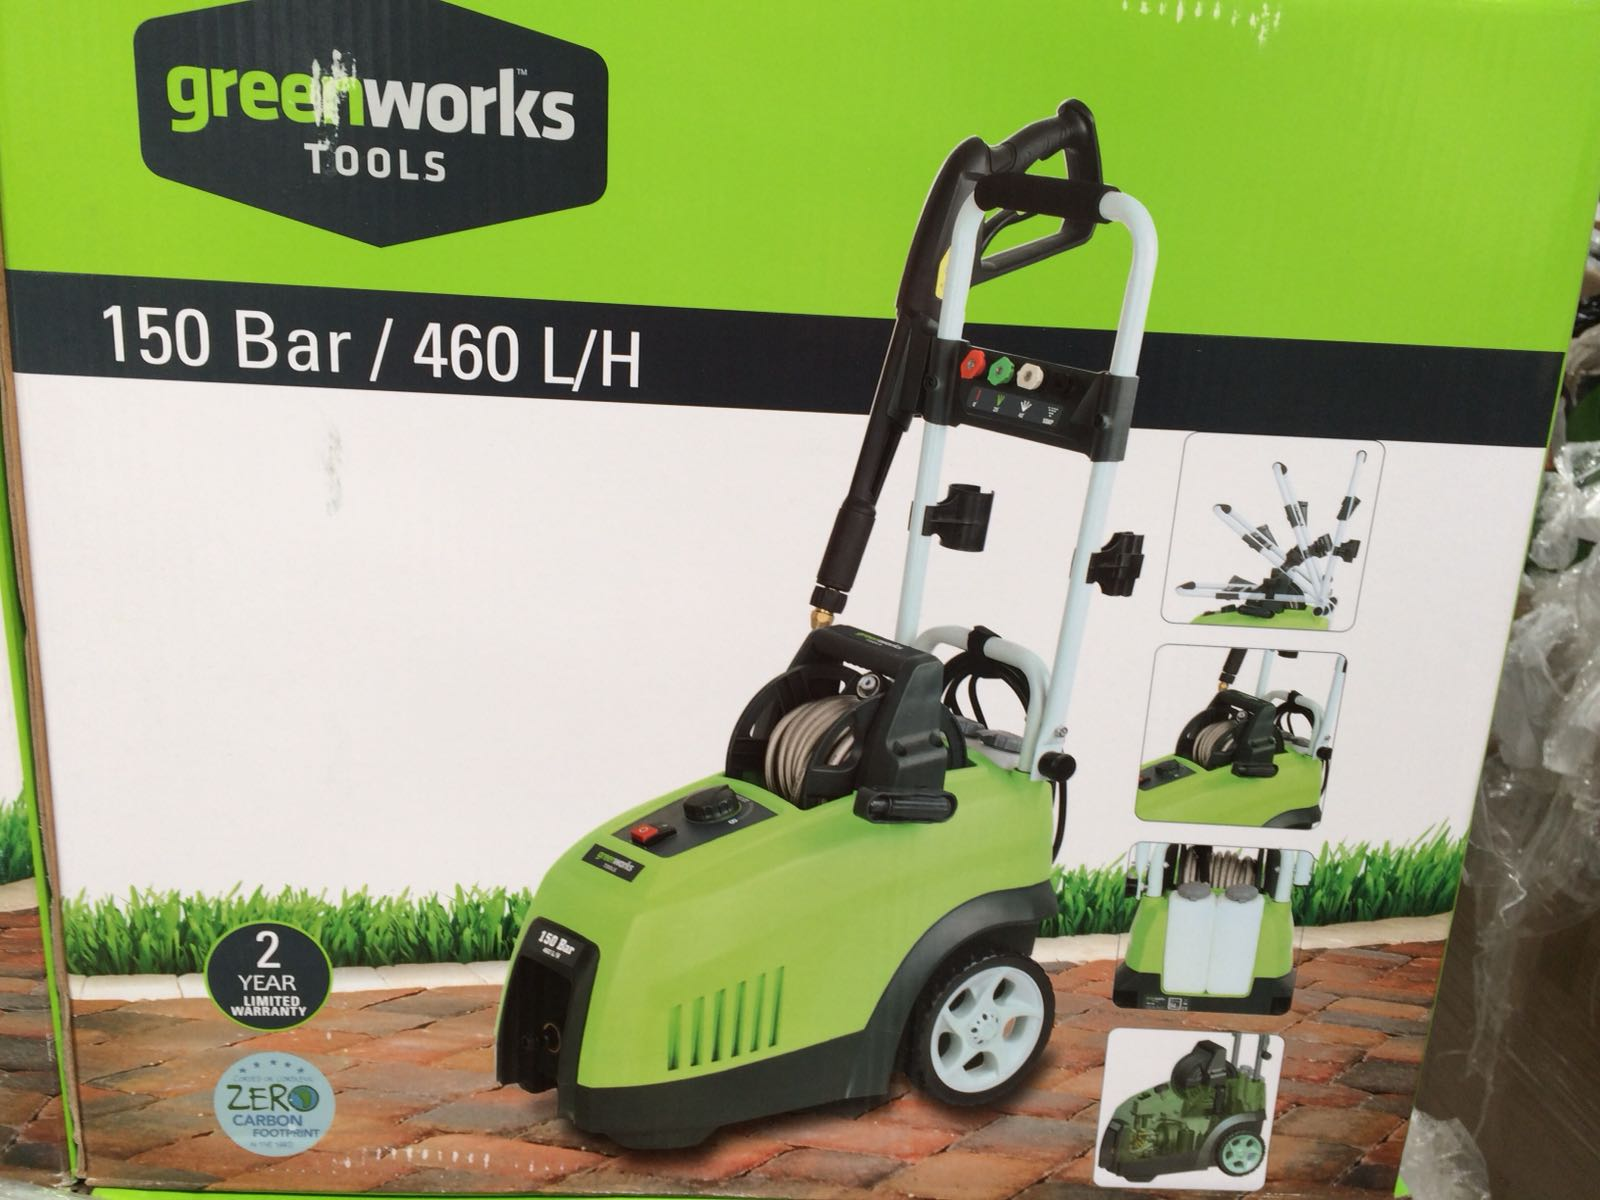 Greenworks jet washers europe aug 28 18